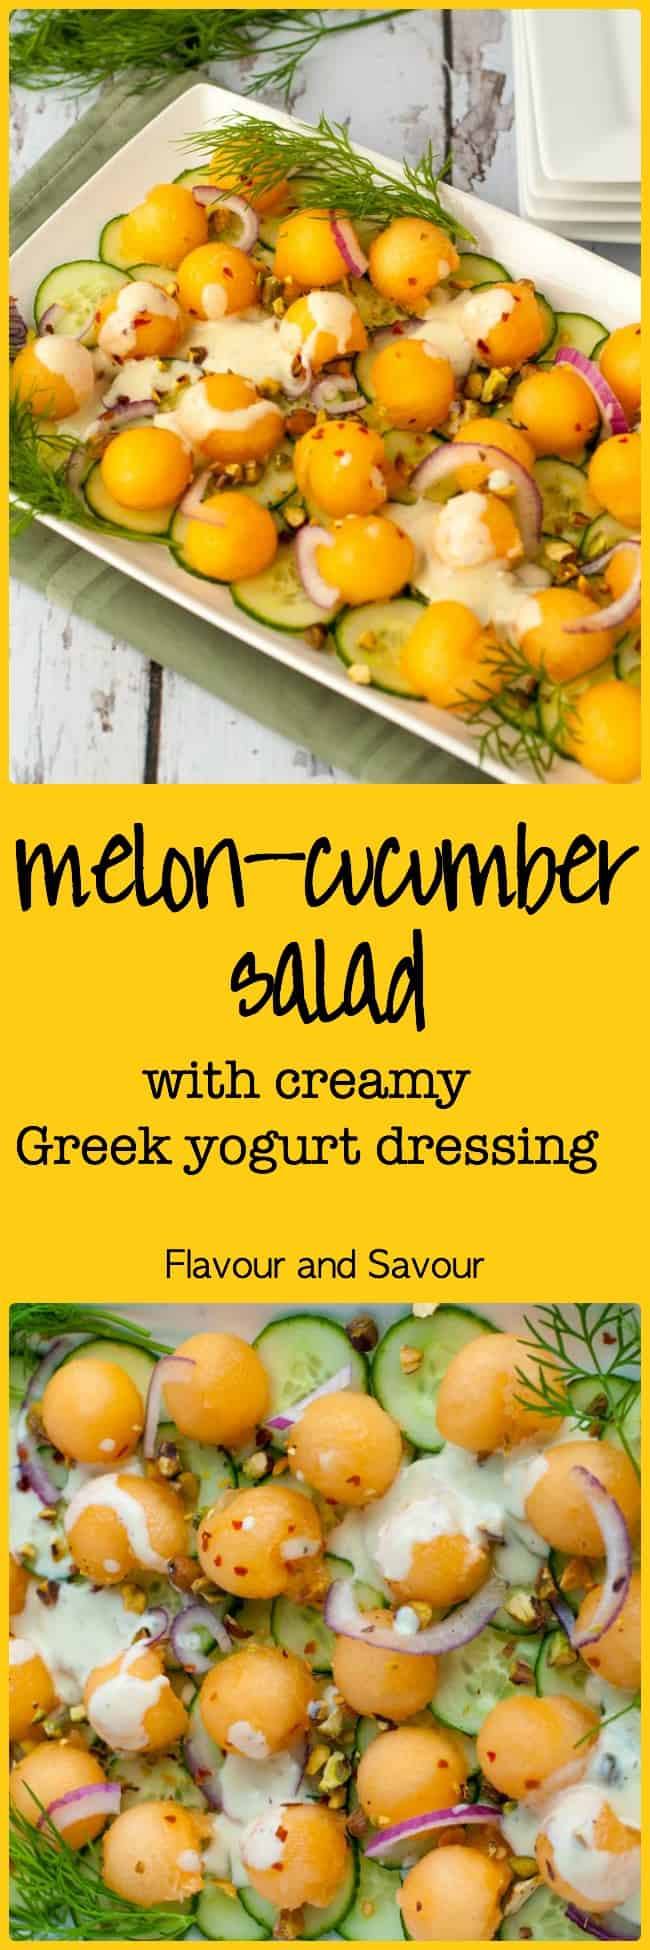 Get the recipe for this refreshingly sweet Melon Cucumber Salad. It features Honey Kiss melon balls and crispy cucumbers with a little zing from red onion and chili flakes. Drizzled with a creamy Greek yogurt dressing, it's an ideal spring or summer salad.